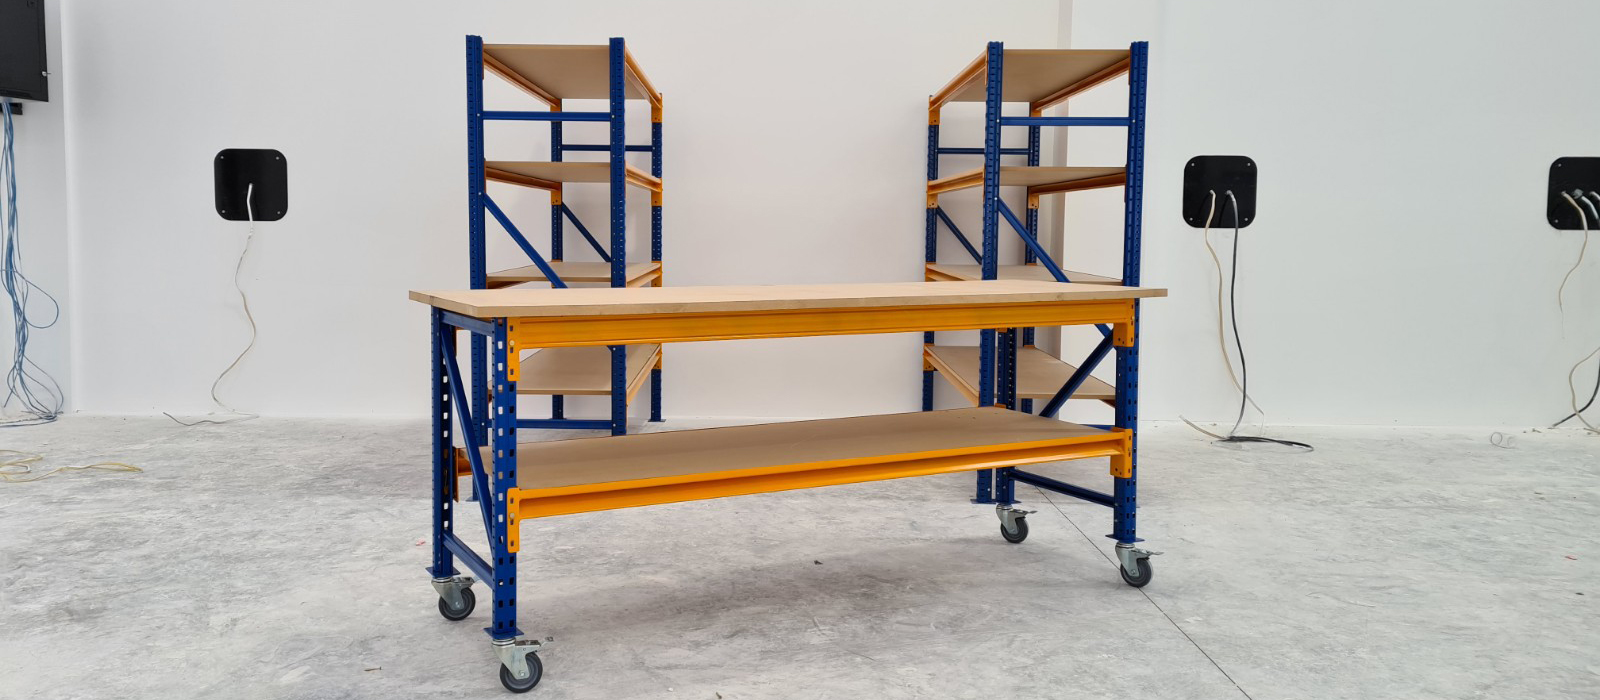 Bridons PictonWorkbench and Stackit Series Shelving